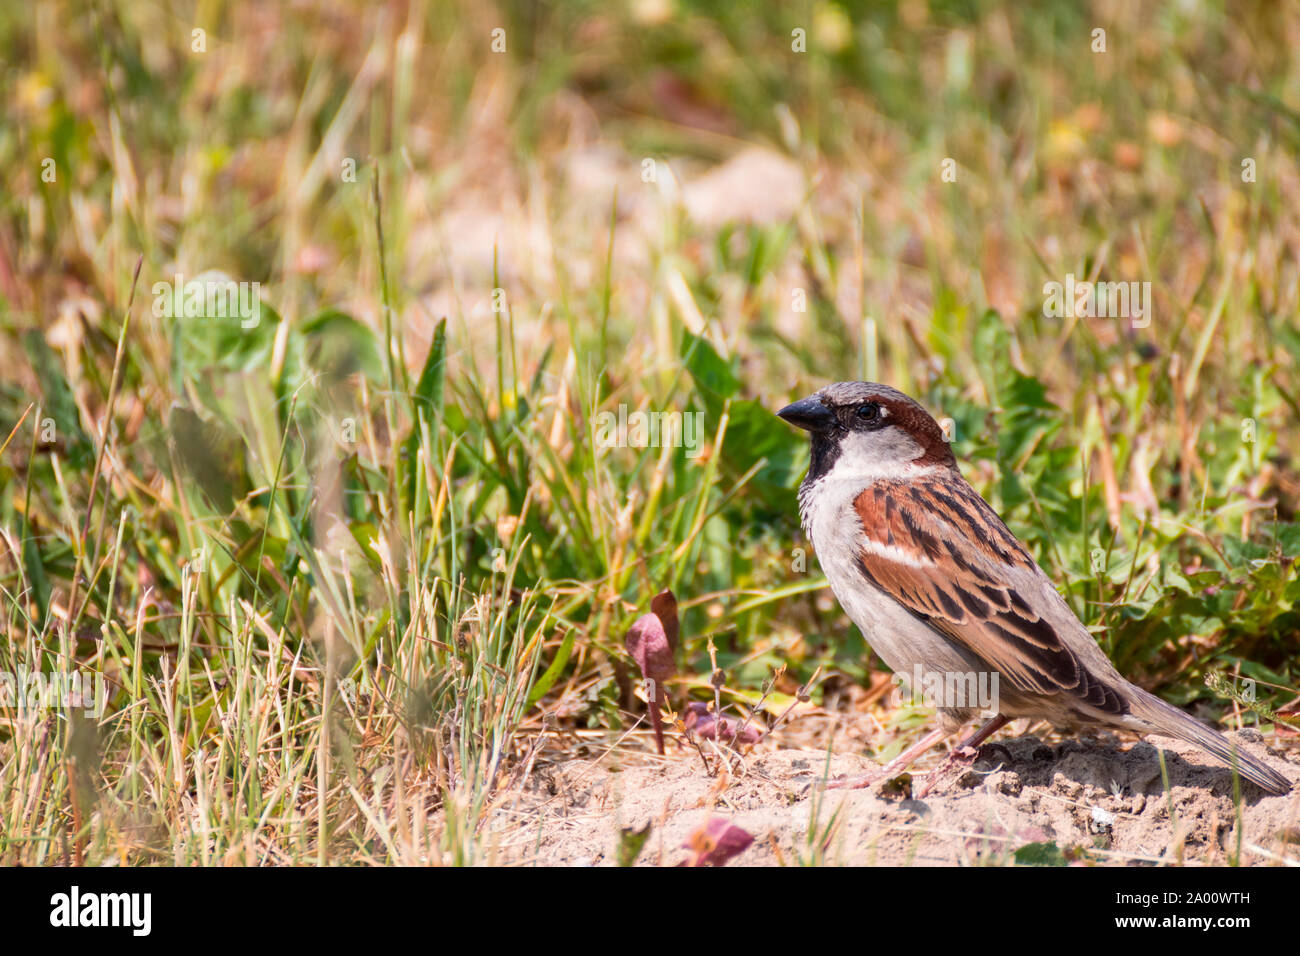 House sparrow, Zingst, Mecklenburg-Vorpommern, Germany, (Passer domesticus) Stock Photo